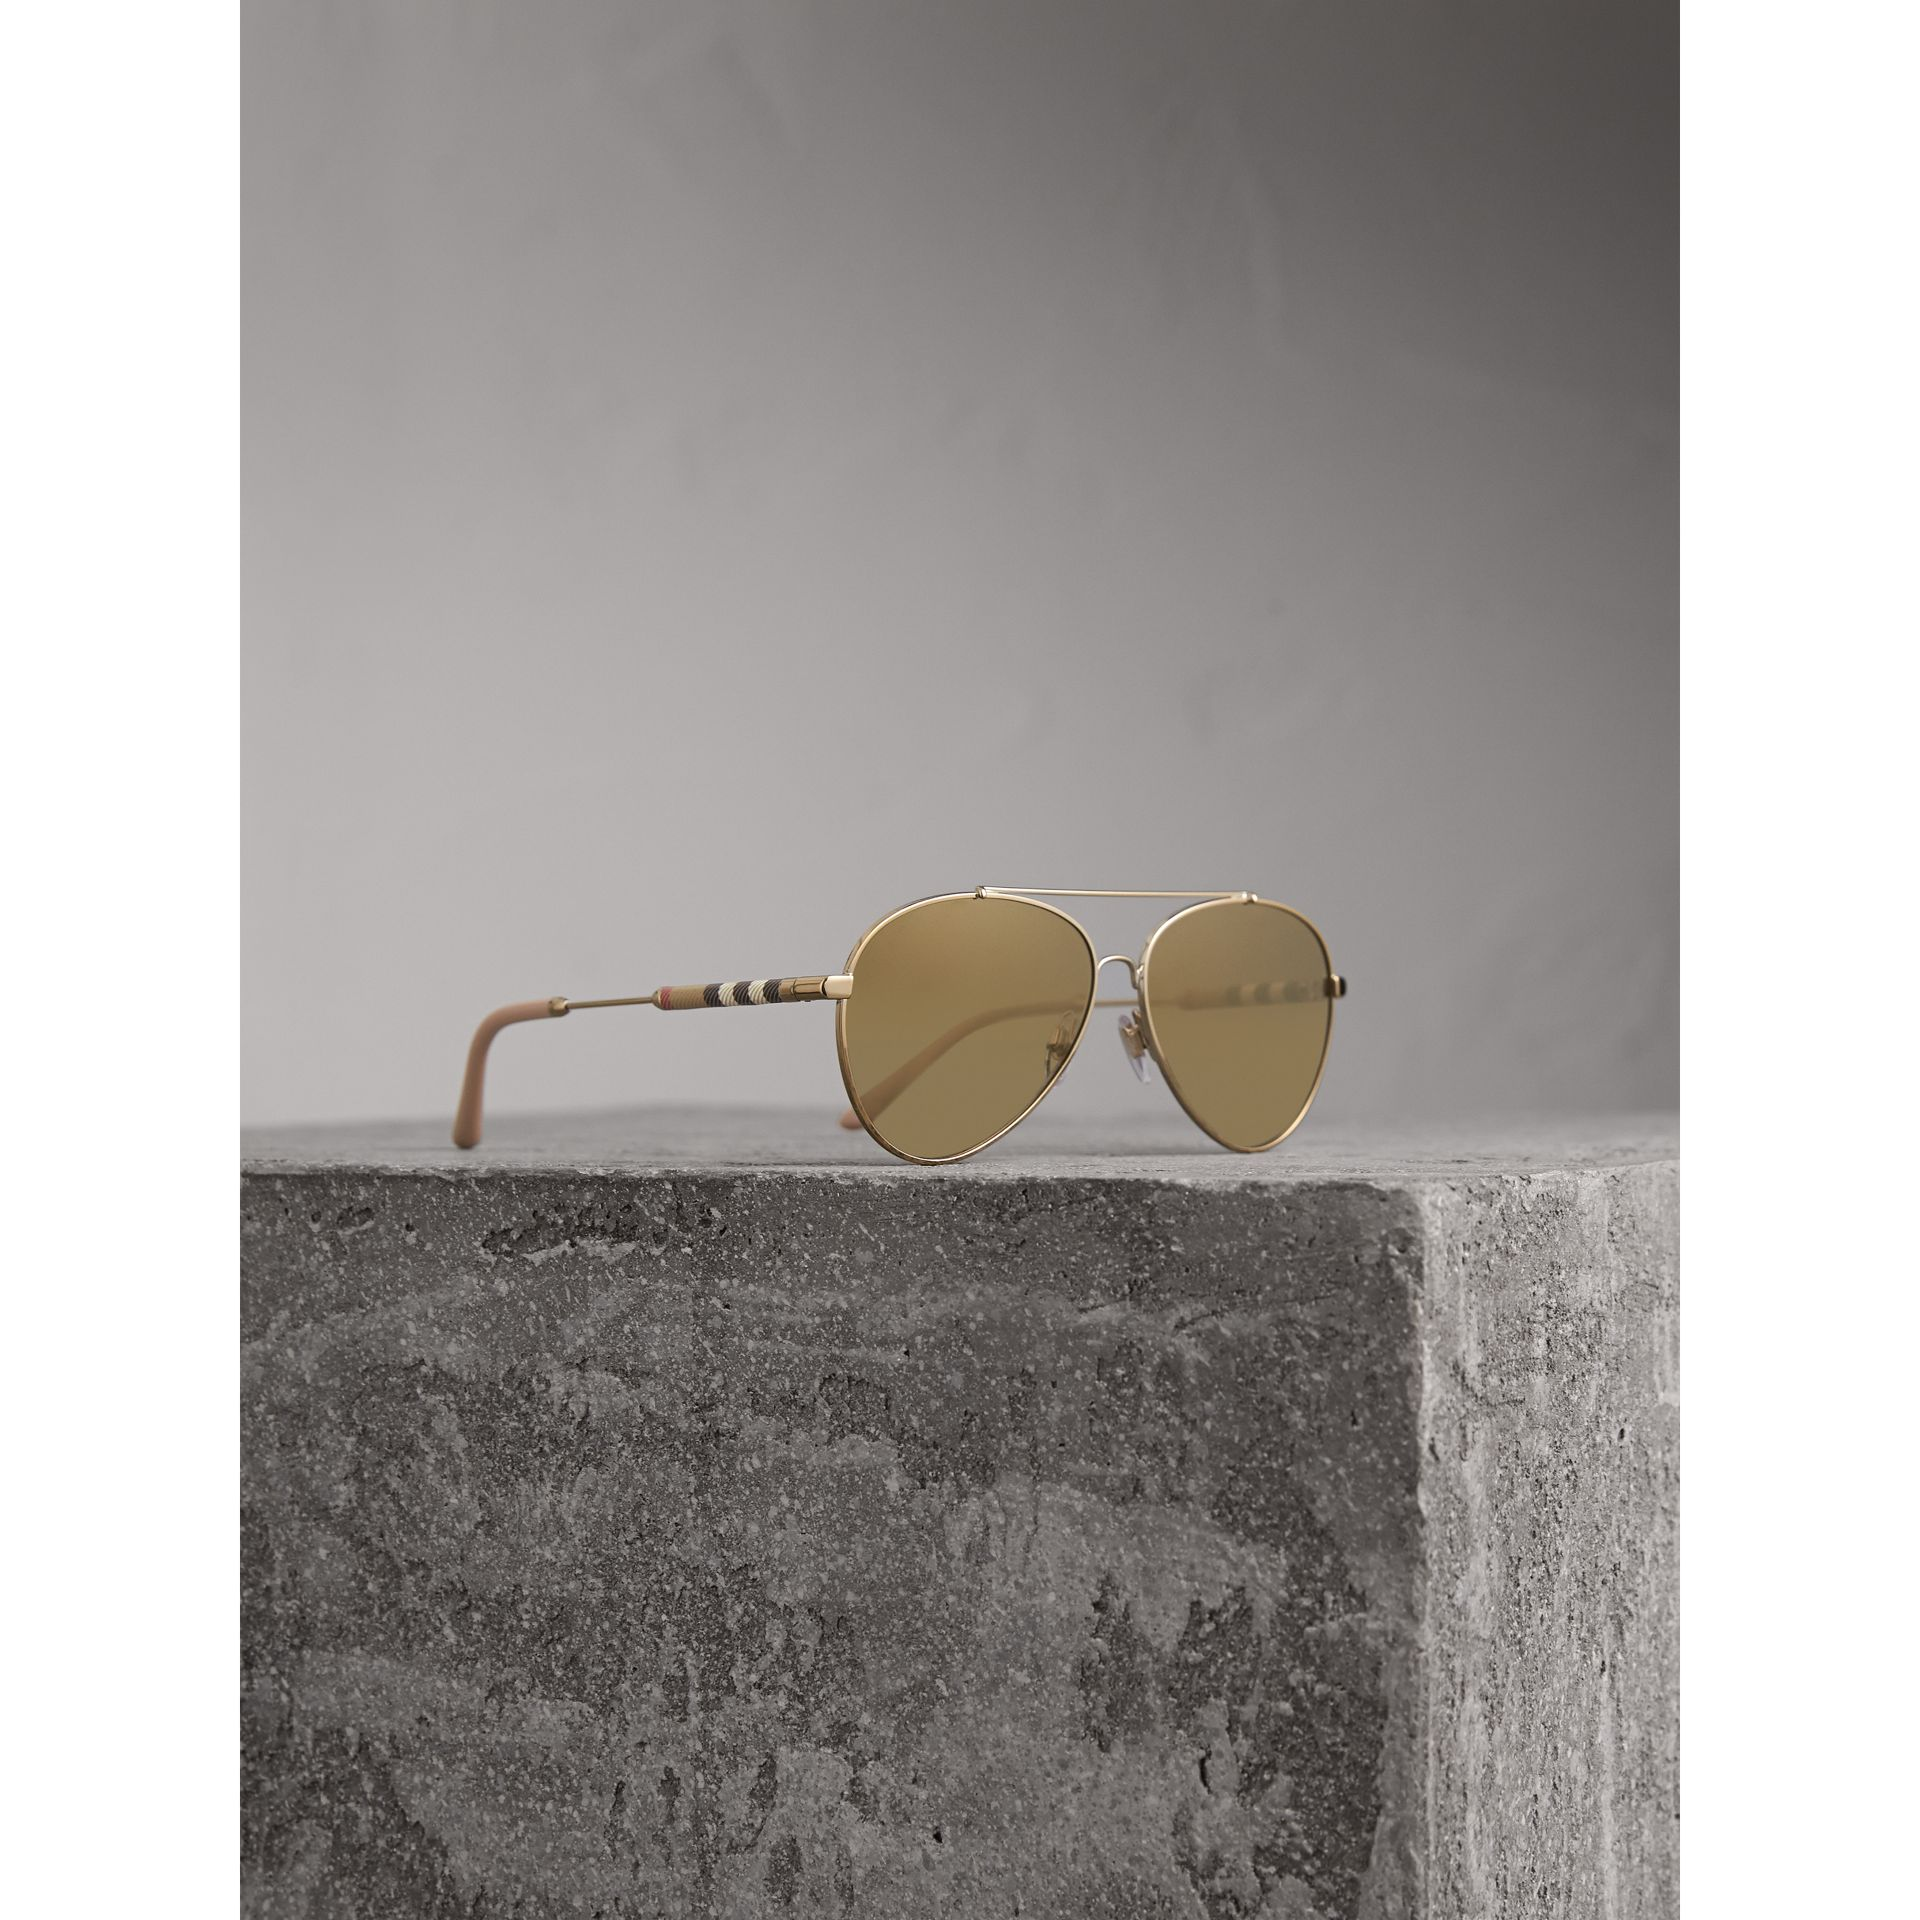 Check Detail Mirrored Pilot Sunglasses in Nude - Women | Burberry - gallery image 1